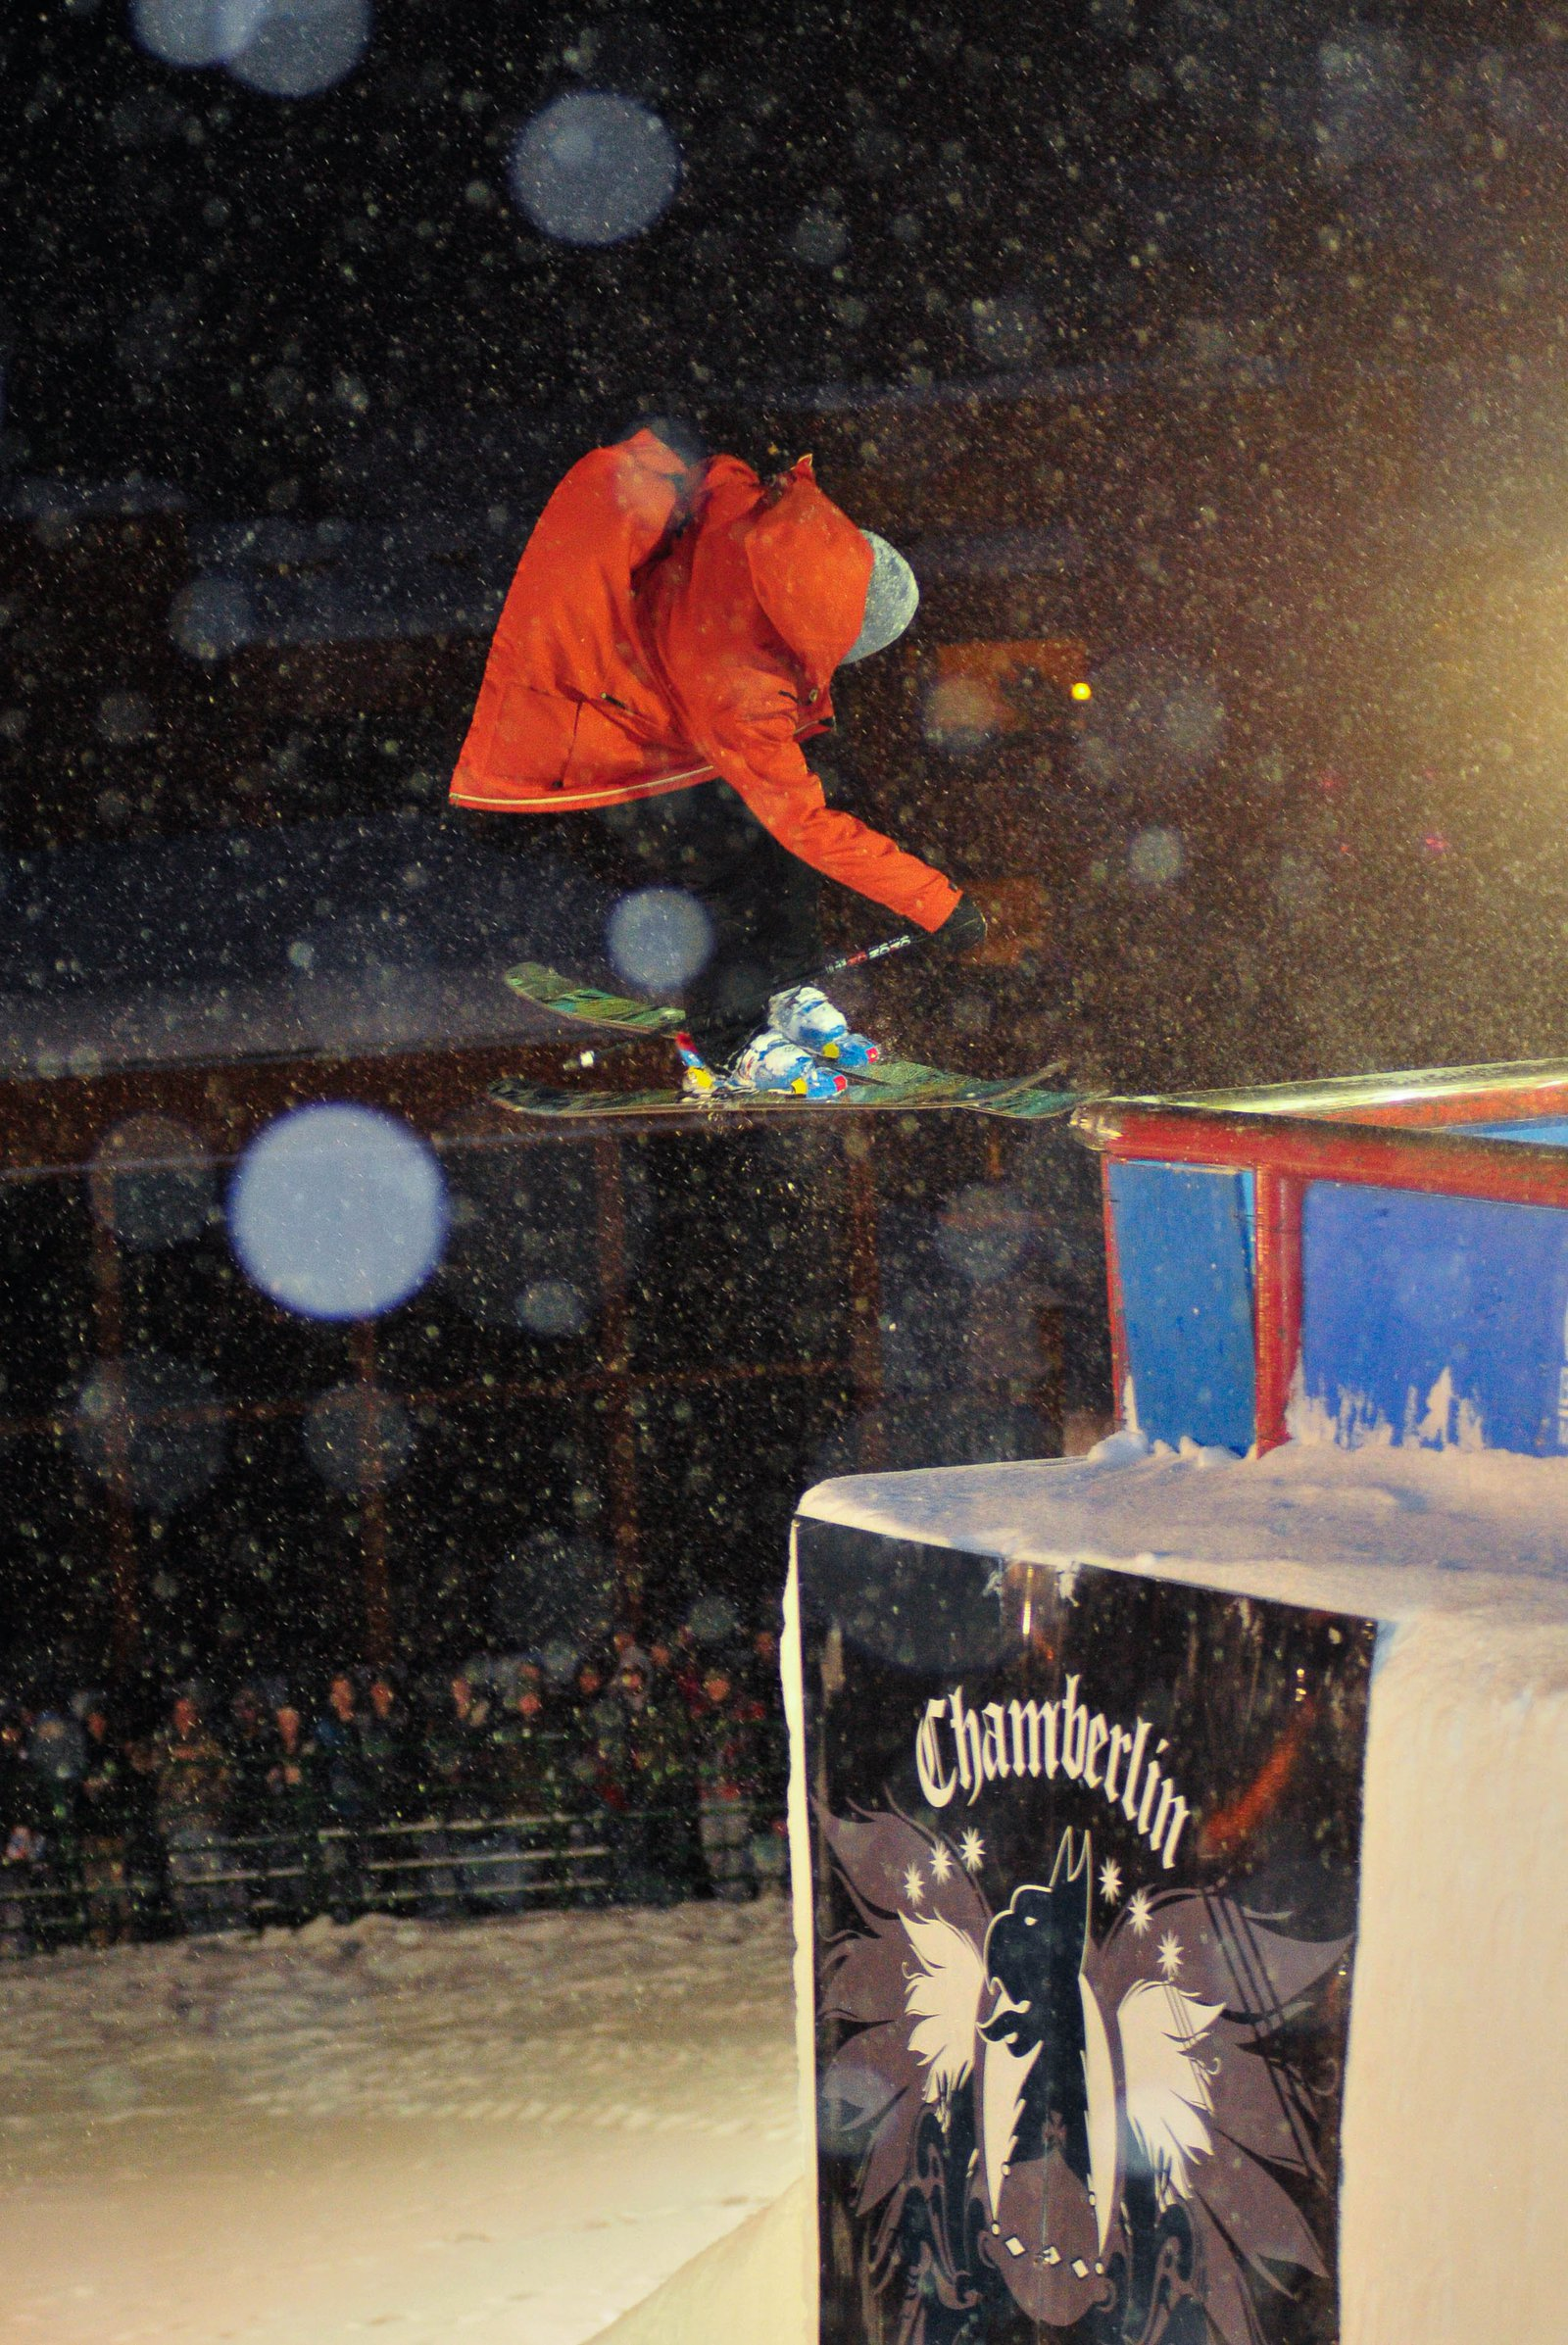 Shay Lee Chamberlain rail jam